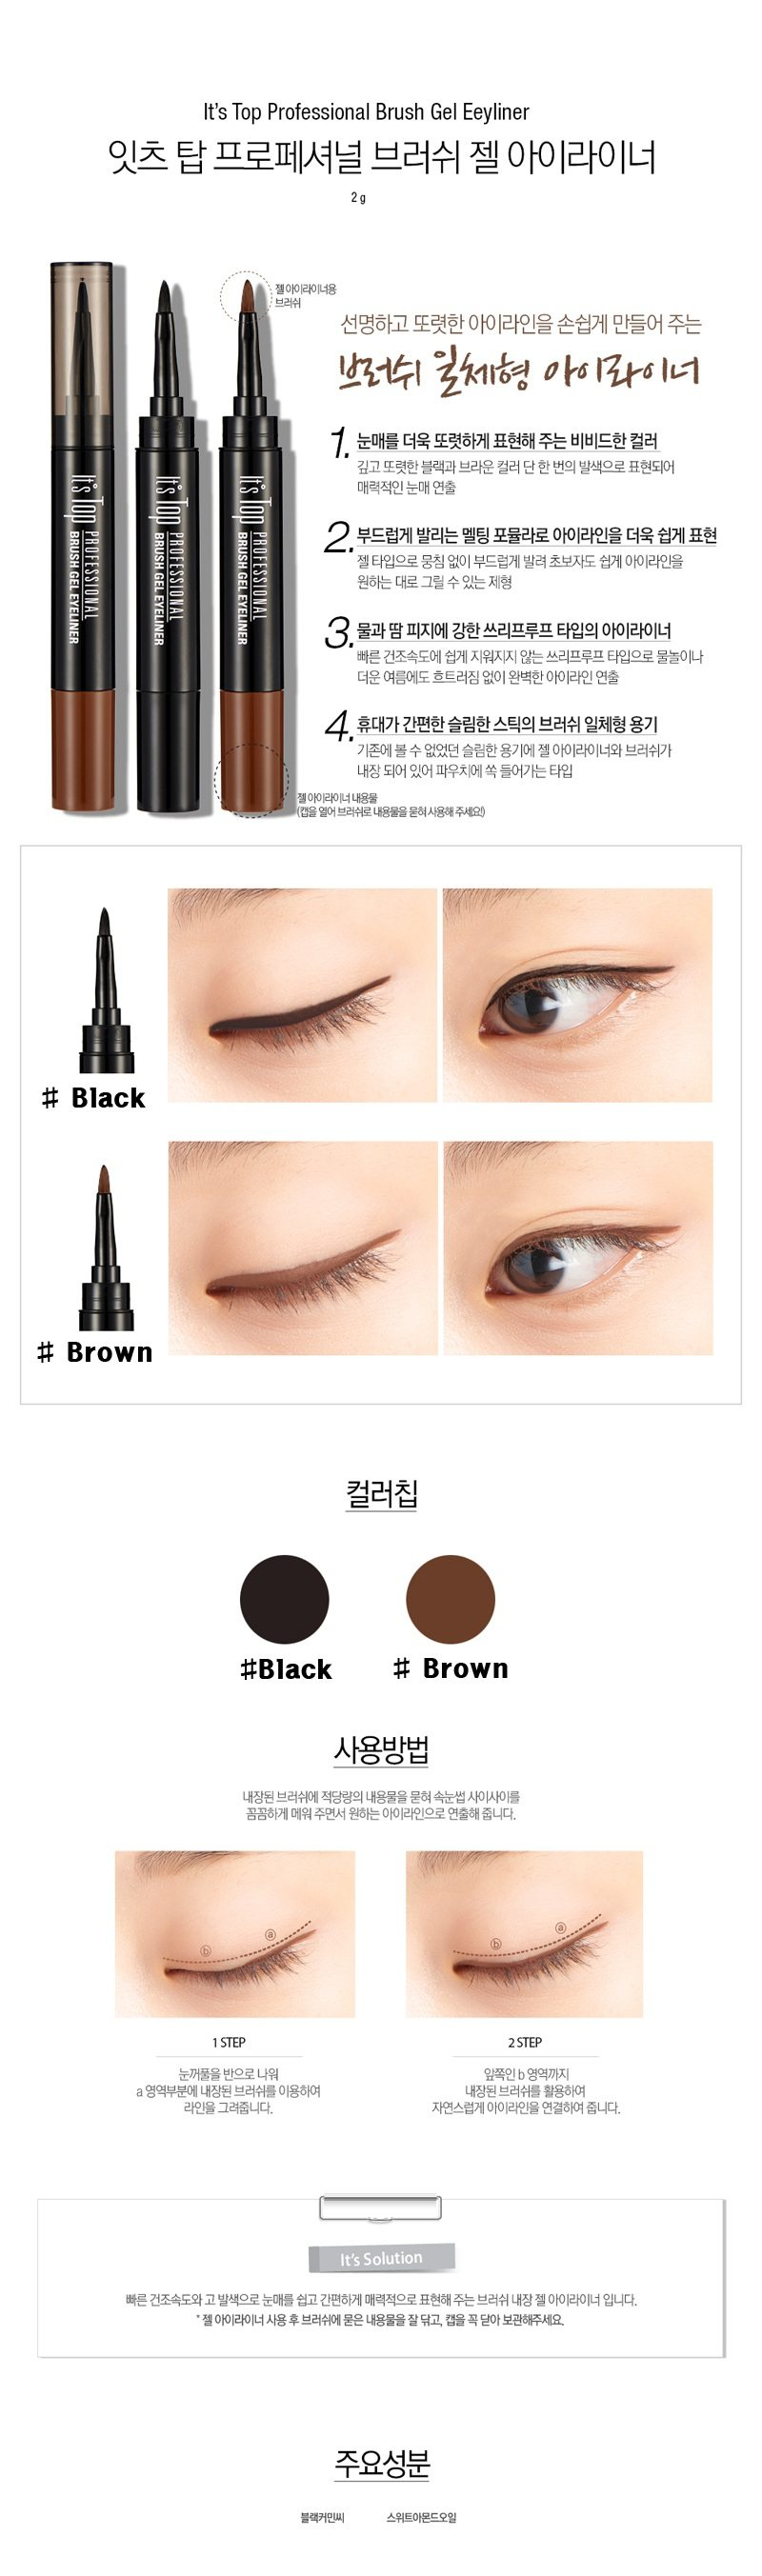 It's Skin It's Top Professional Brush Gel Eyeliner korean cosmetic makeup product online shop malaysia brunei mexico1